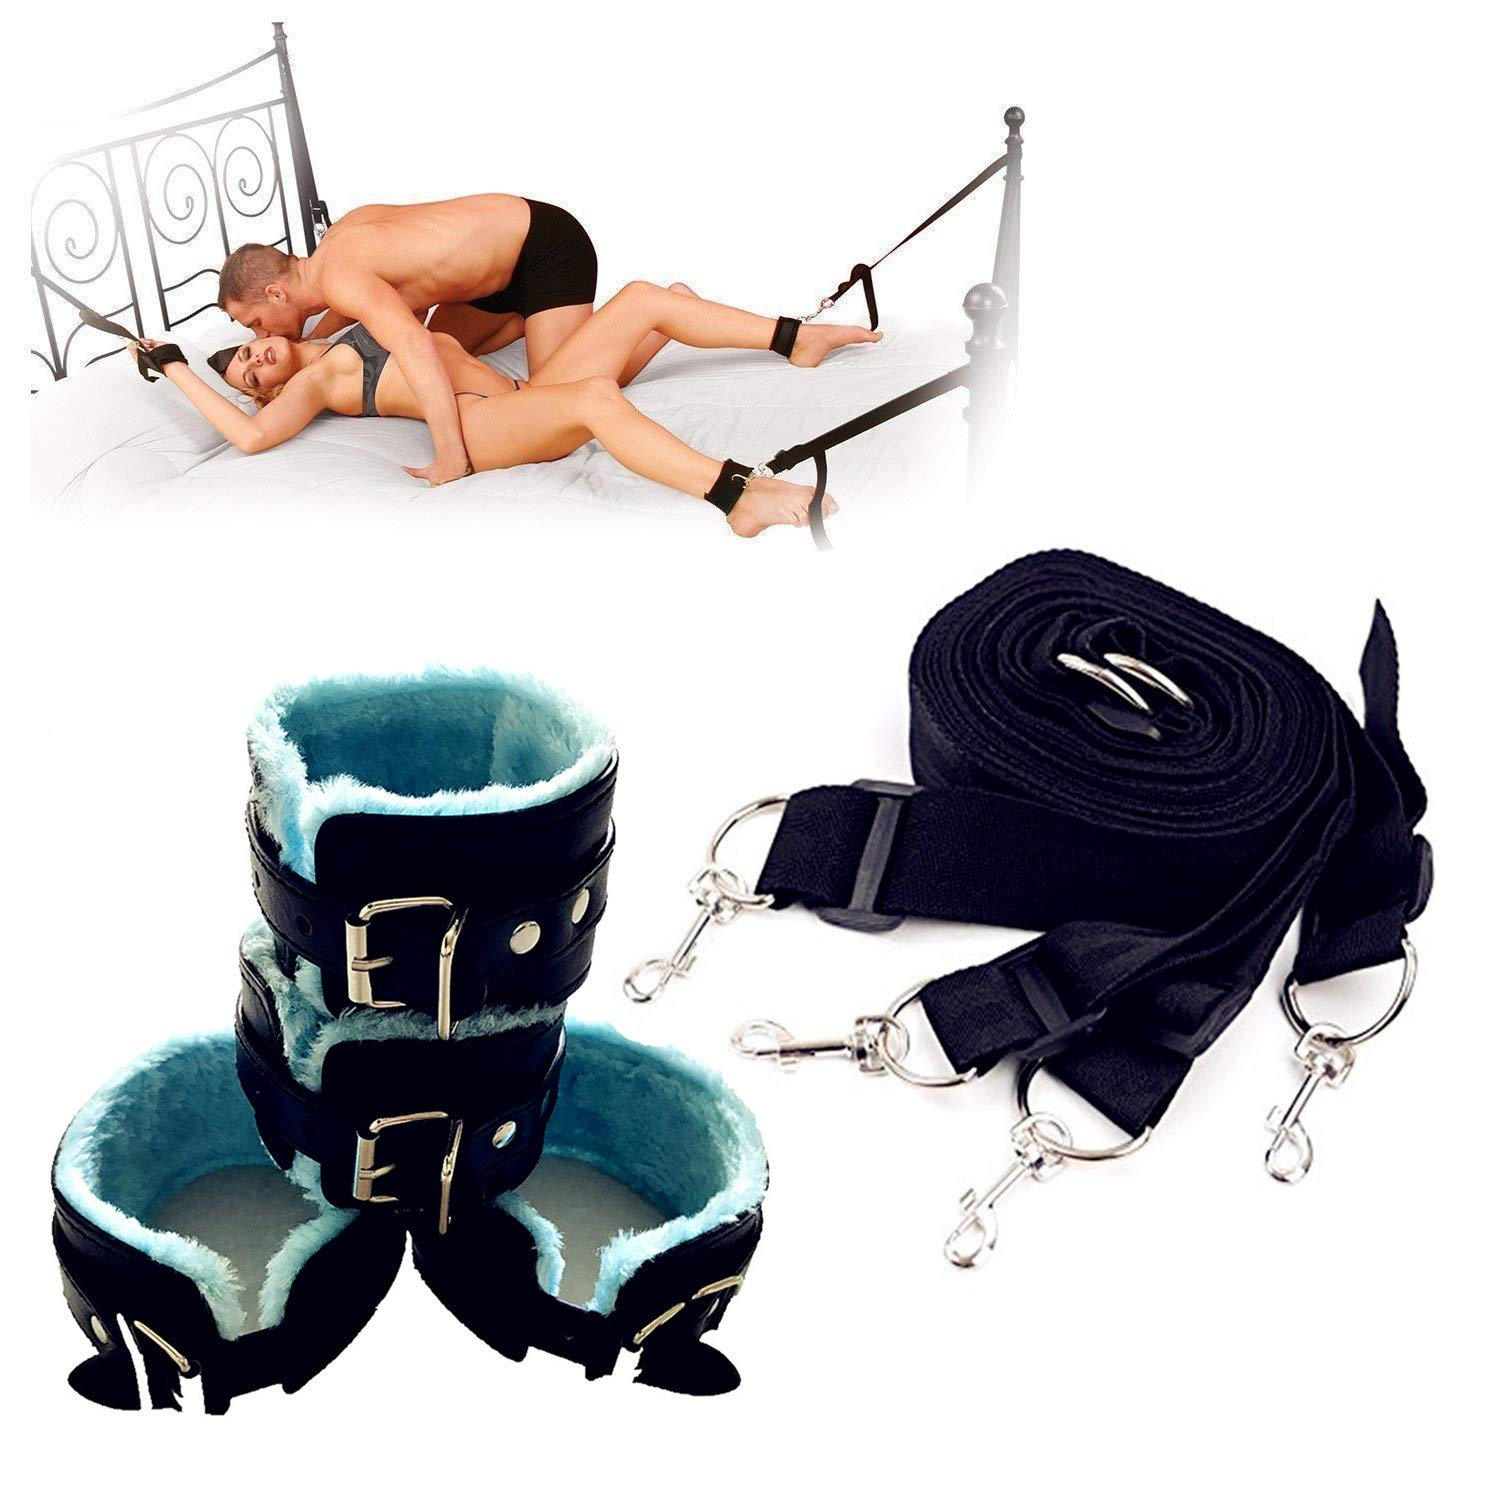 Iuvolux Arm and Leg Bed Restraint System Kit - Adjustable Velcro Wrist and Ankle Cuff - Fit Mattress - Use Under the Bed or Mattress by Iuvolux